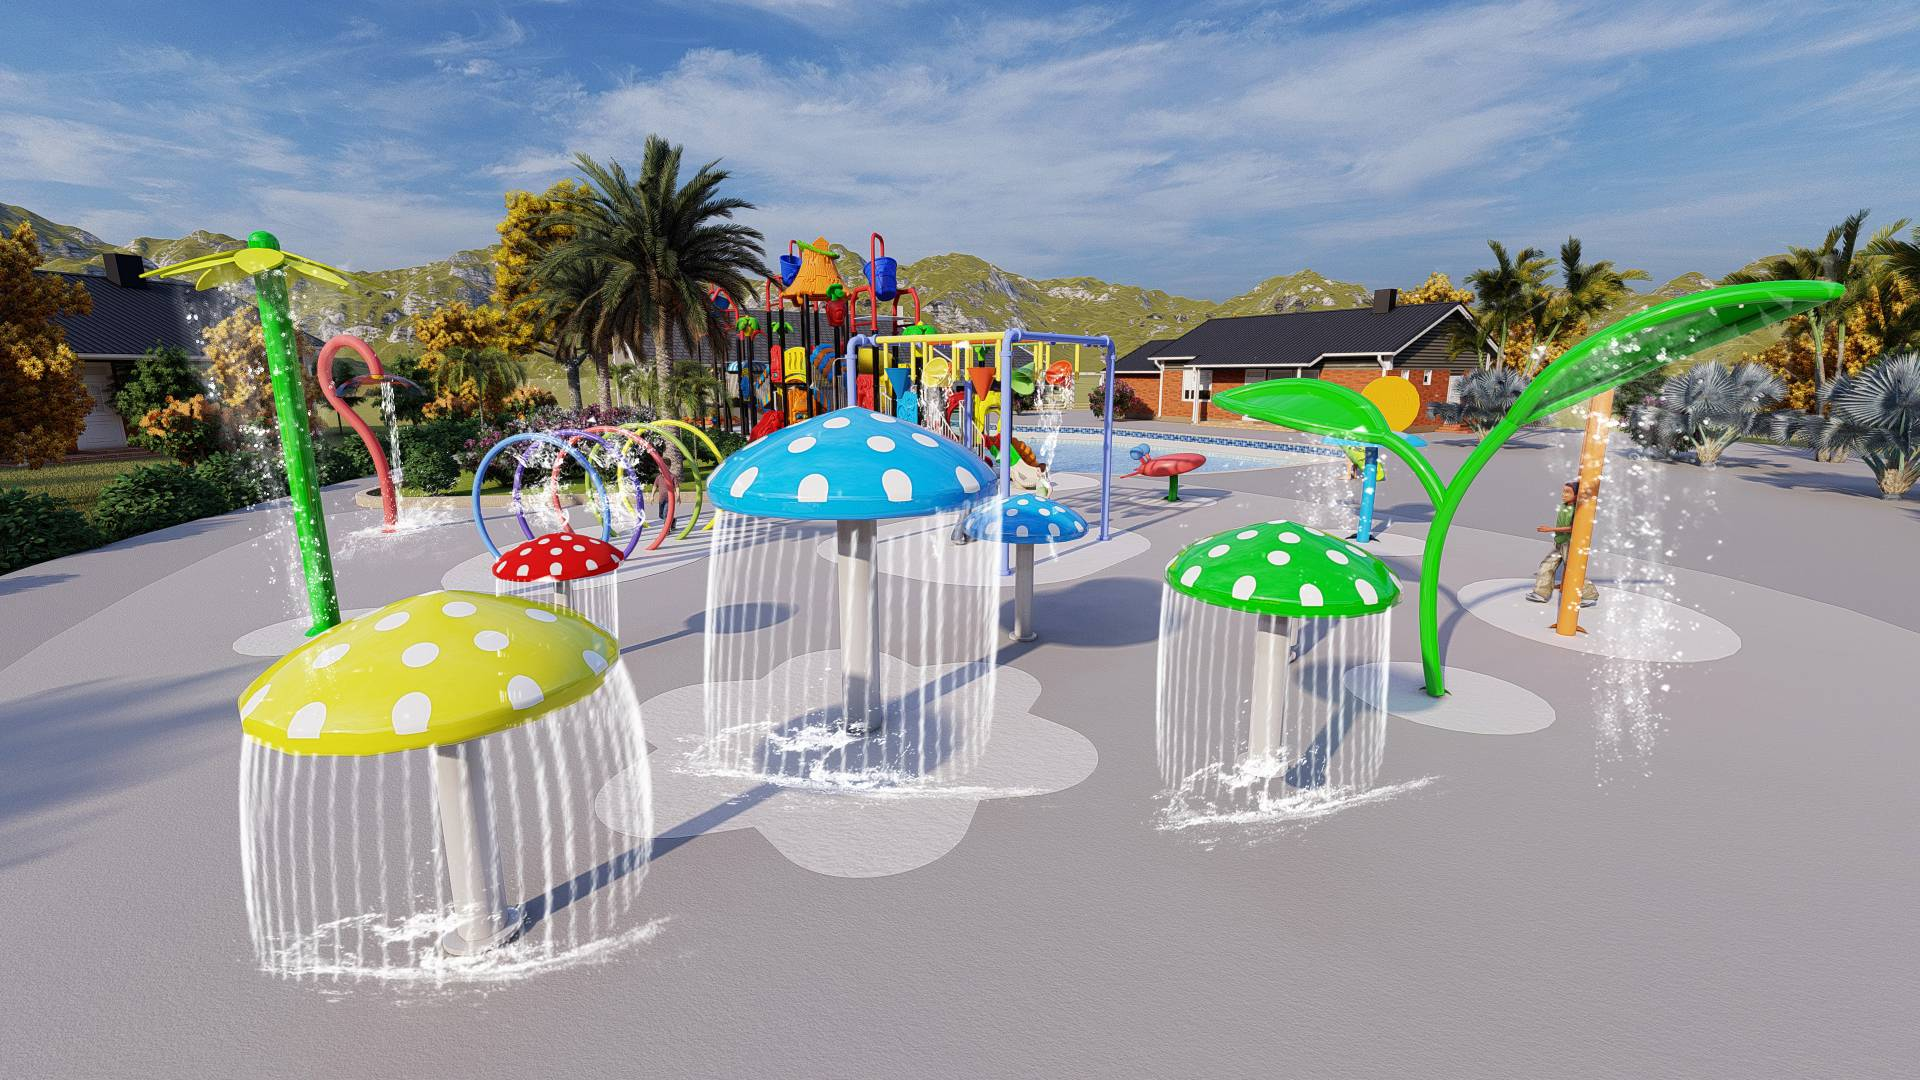 New water play pool design for customer from South Africa